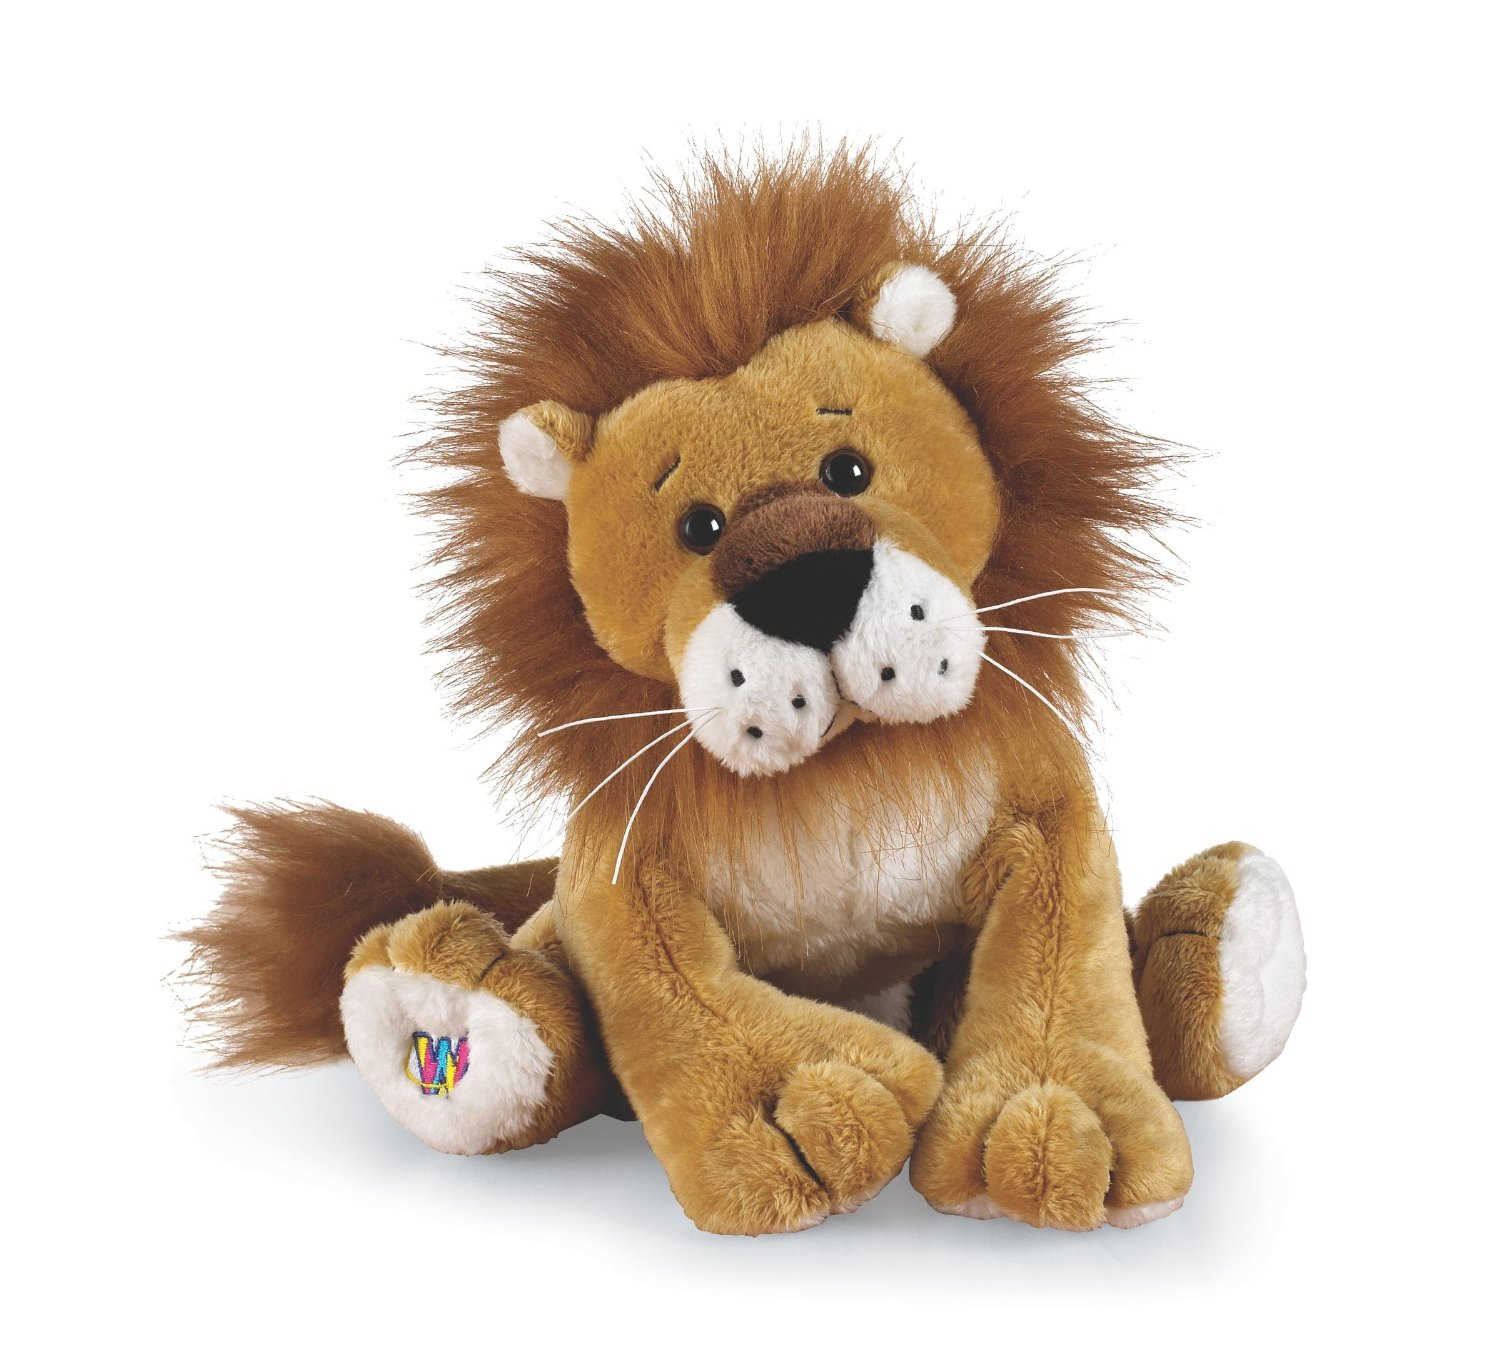 Scary Squeeze Stuffed Animals, The Benefits Of Plush Toys Ganz Parent Club